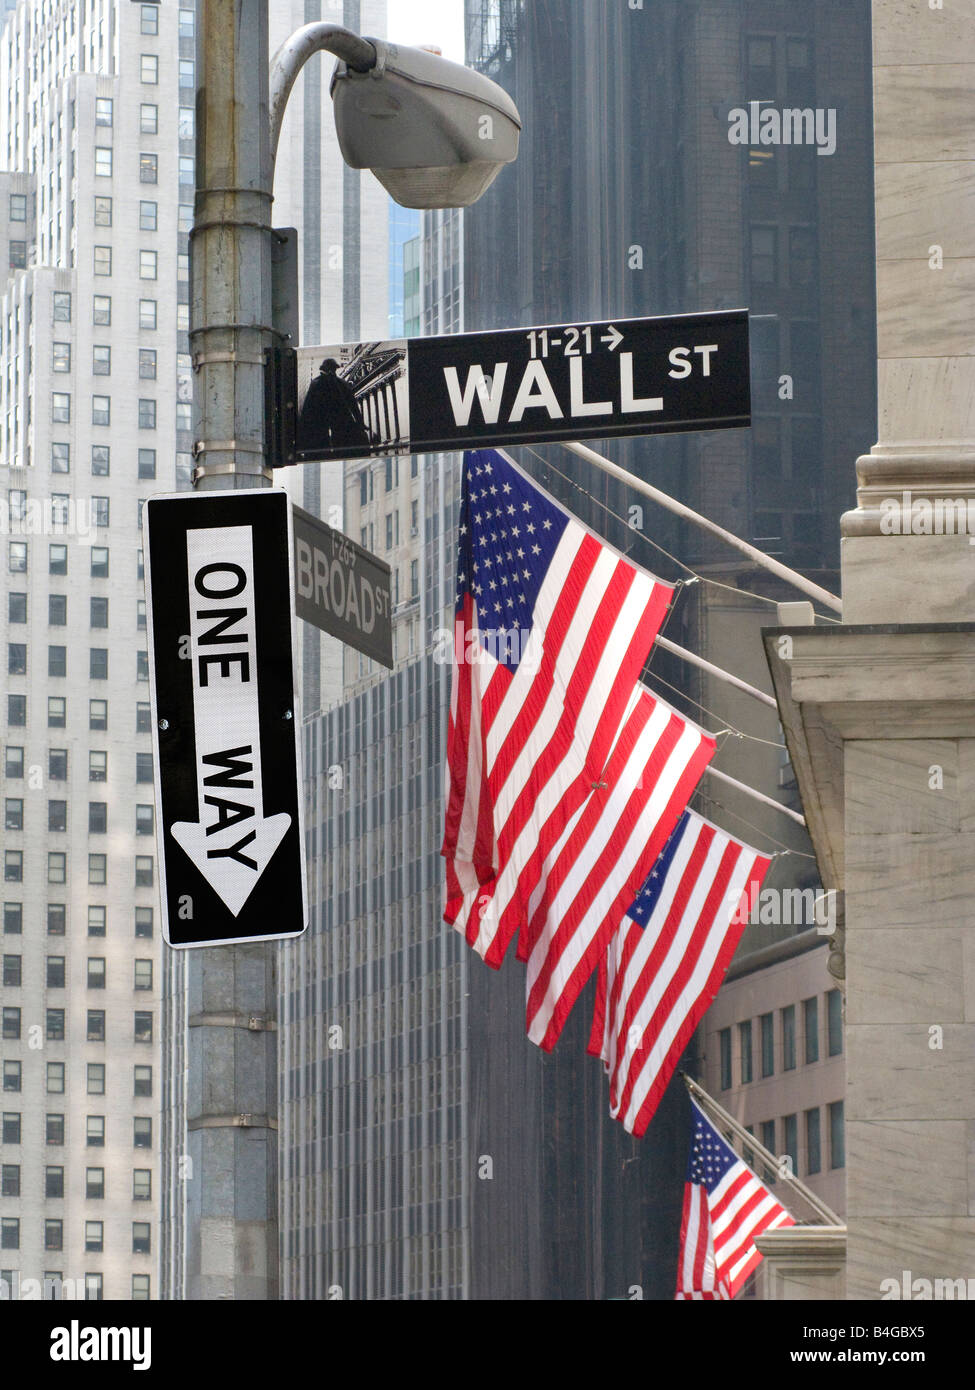 Wall Street corner with traffic one-way sign pointing down - Stock Image